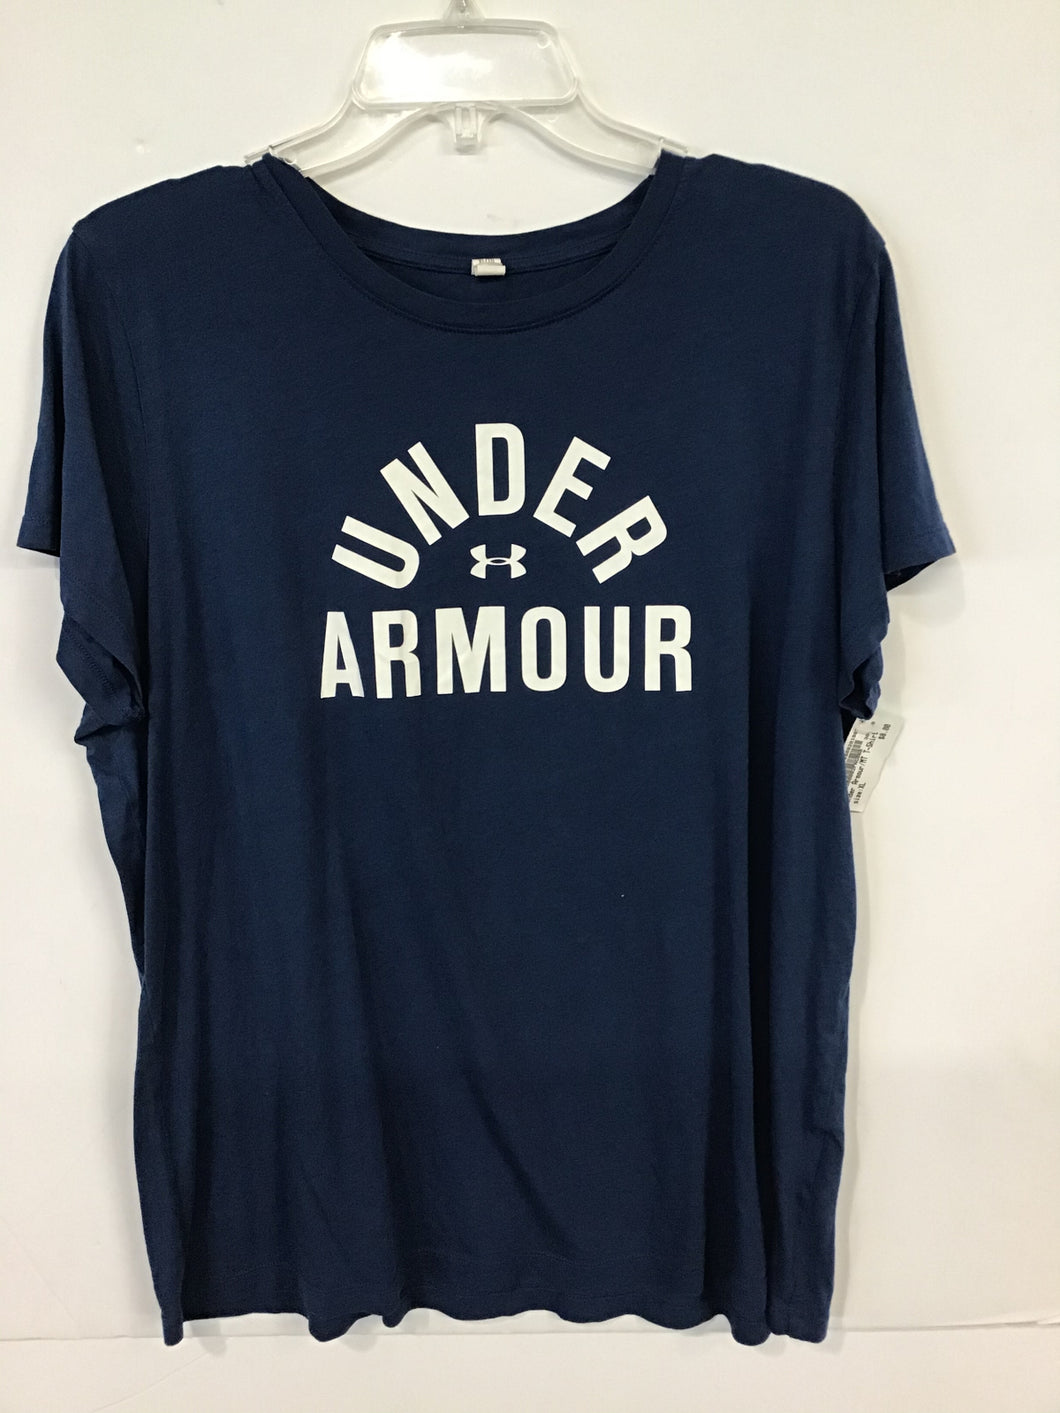 Under Armour T-Shirt Sz. XL